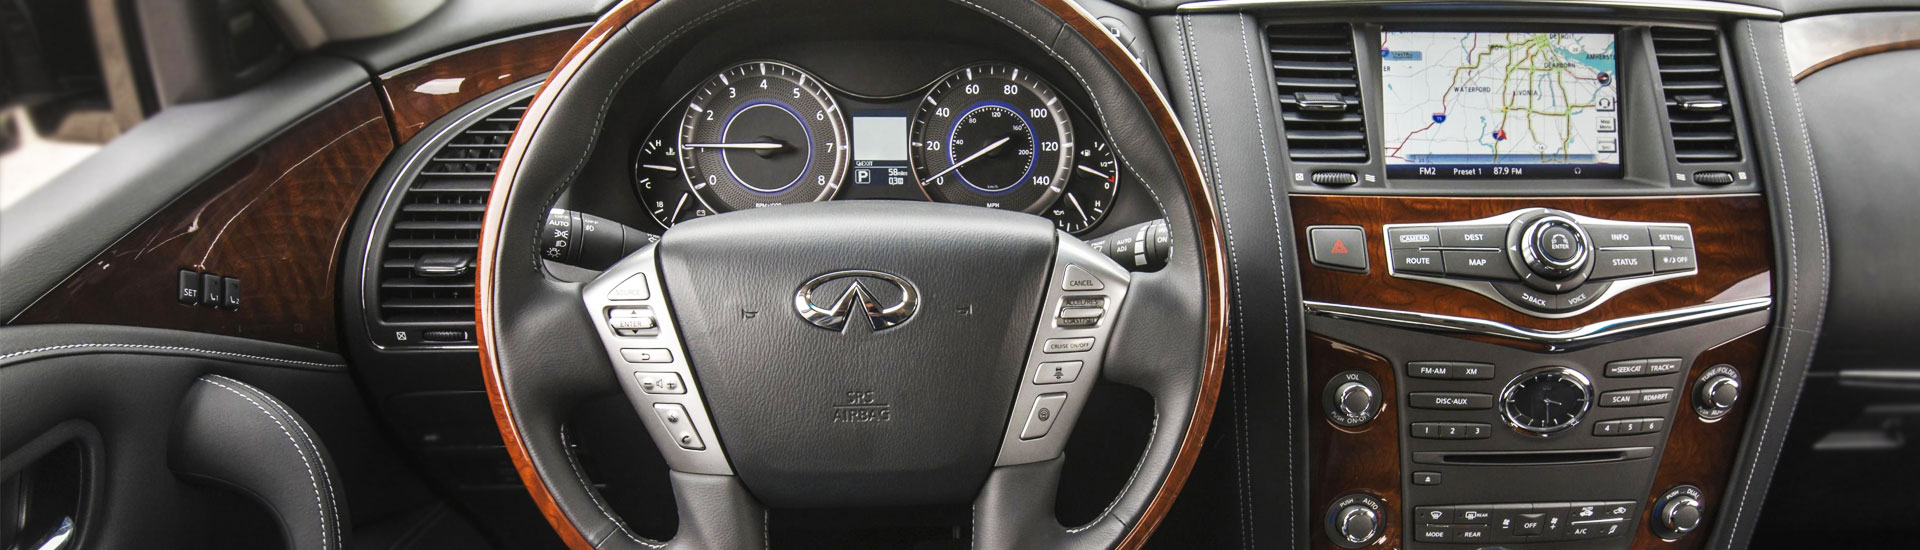 1998 Infiniti Q45 Custom Dash Kits